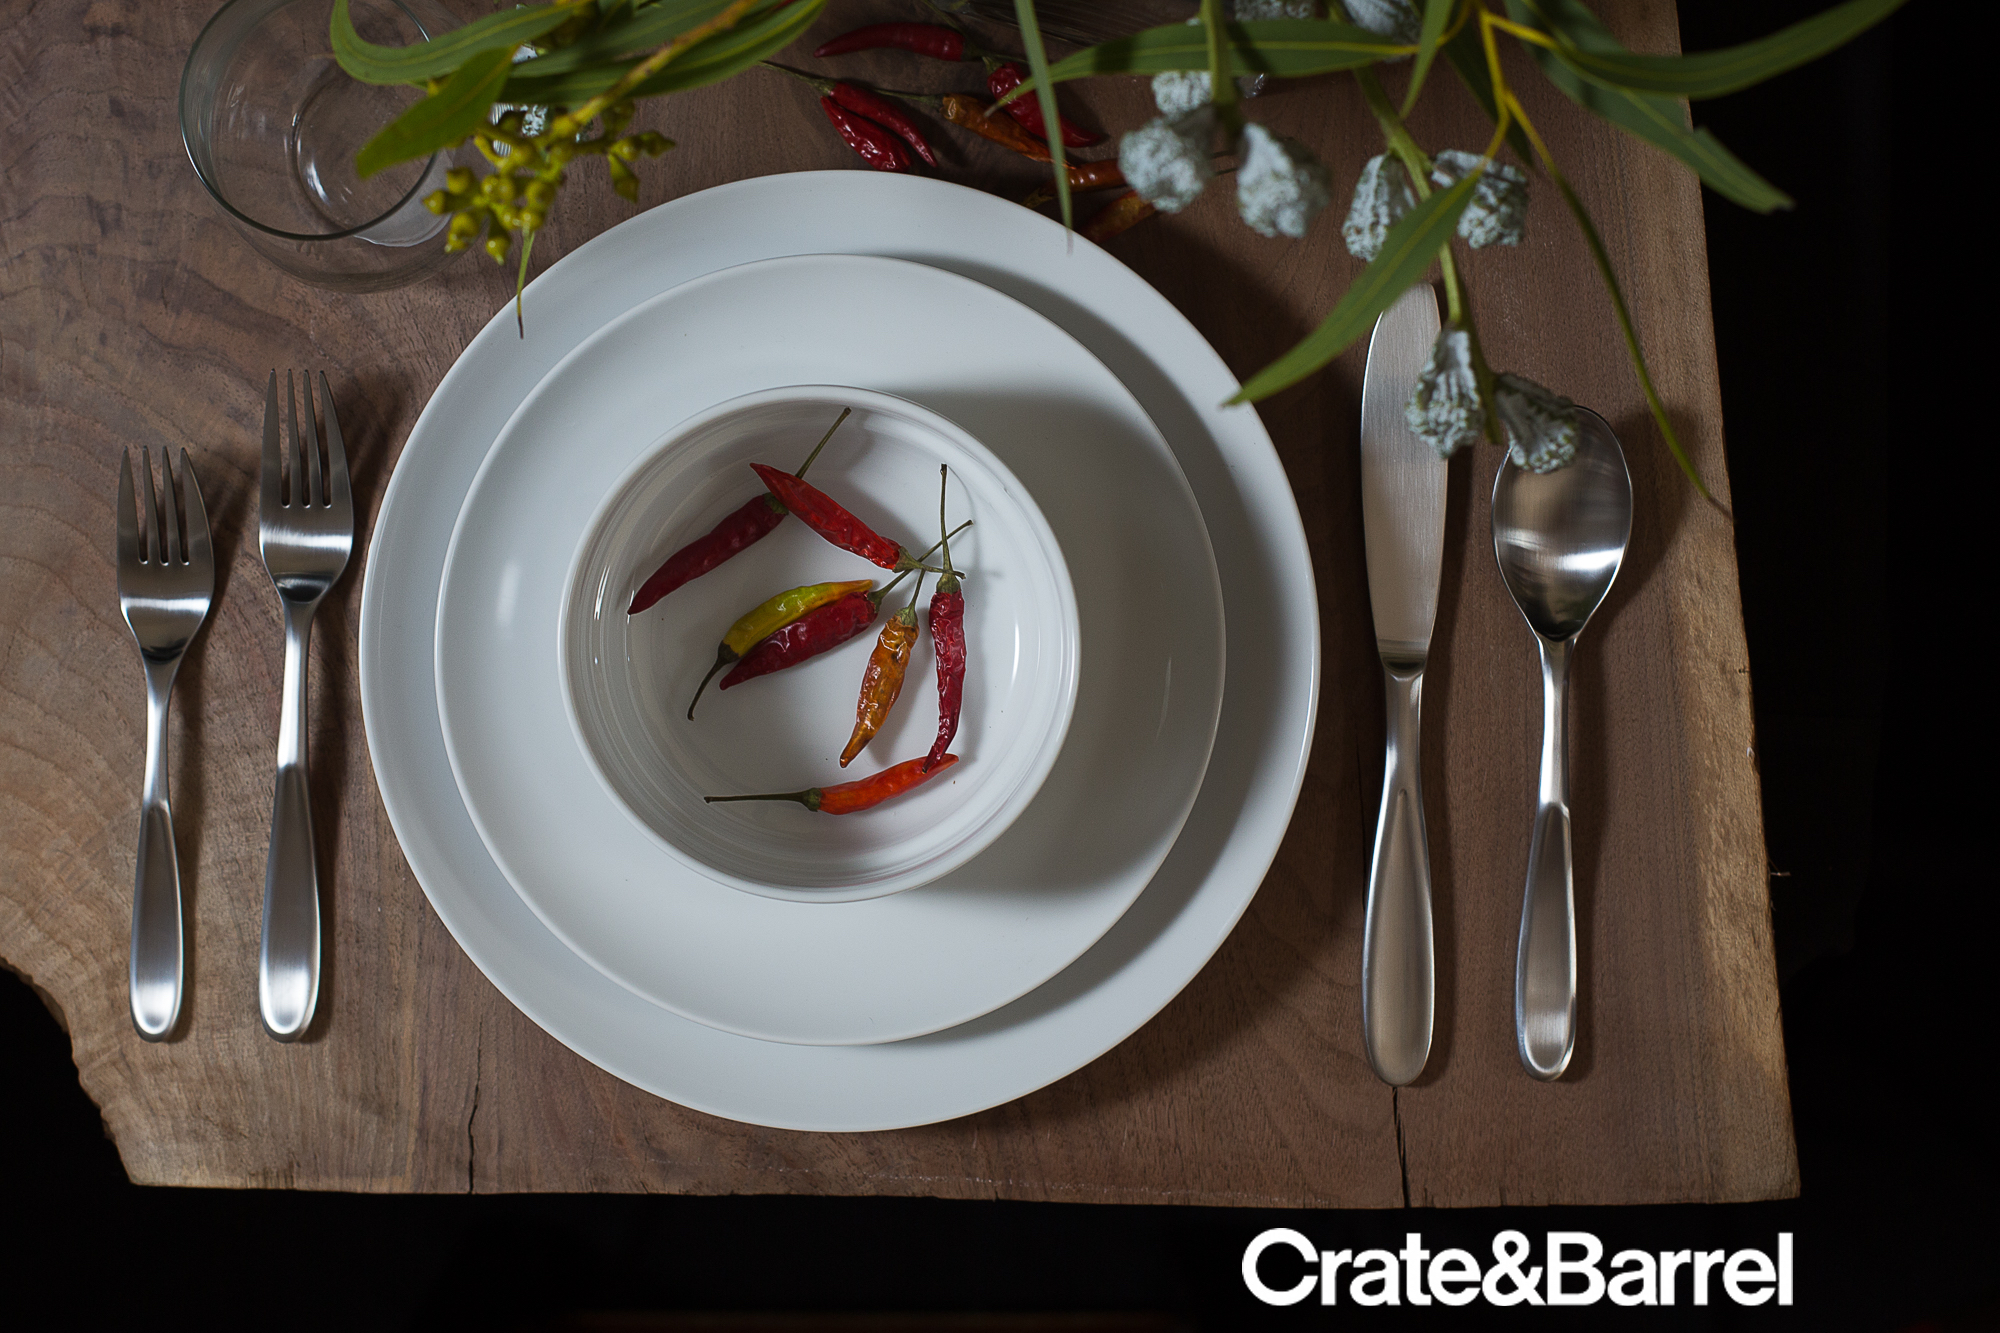 4 DISHWARE_CRATE&BARREL_AD copy.jpg